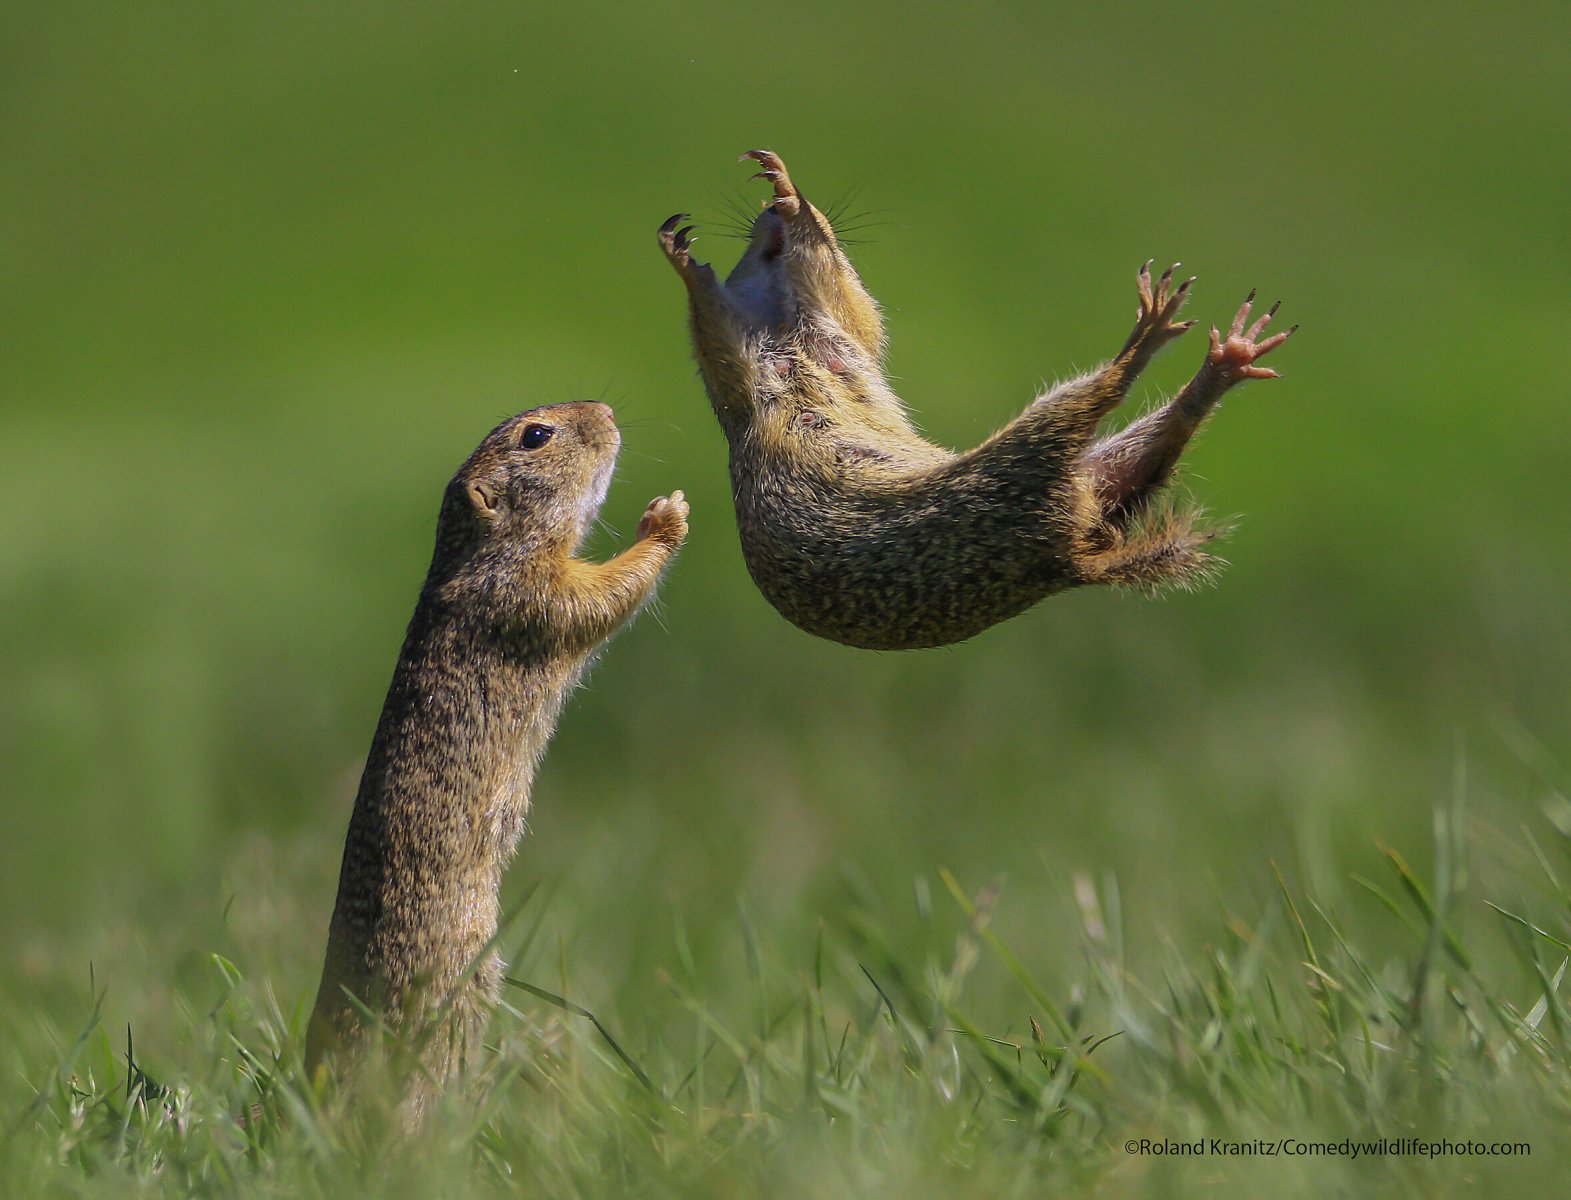 A gopher jumps in the air as if to be caught by a fellow gopher.